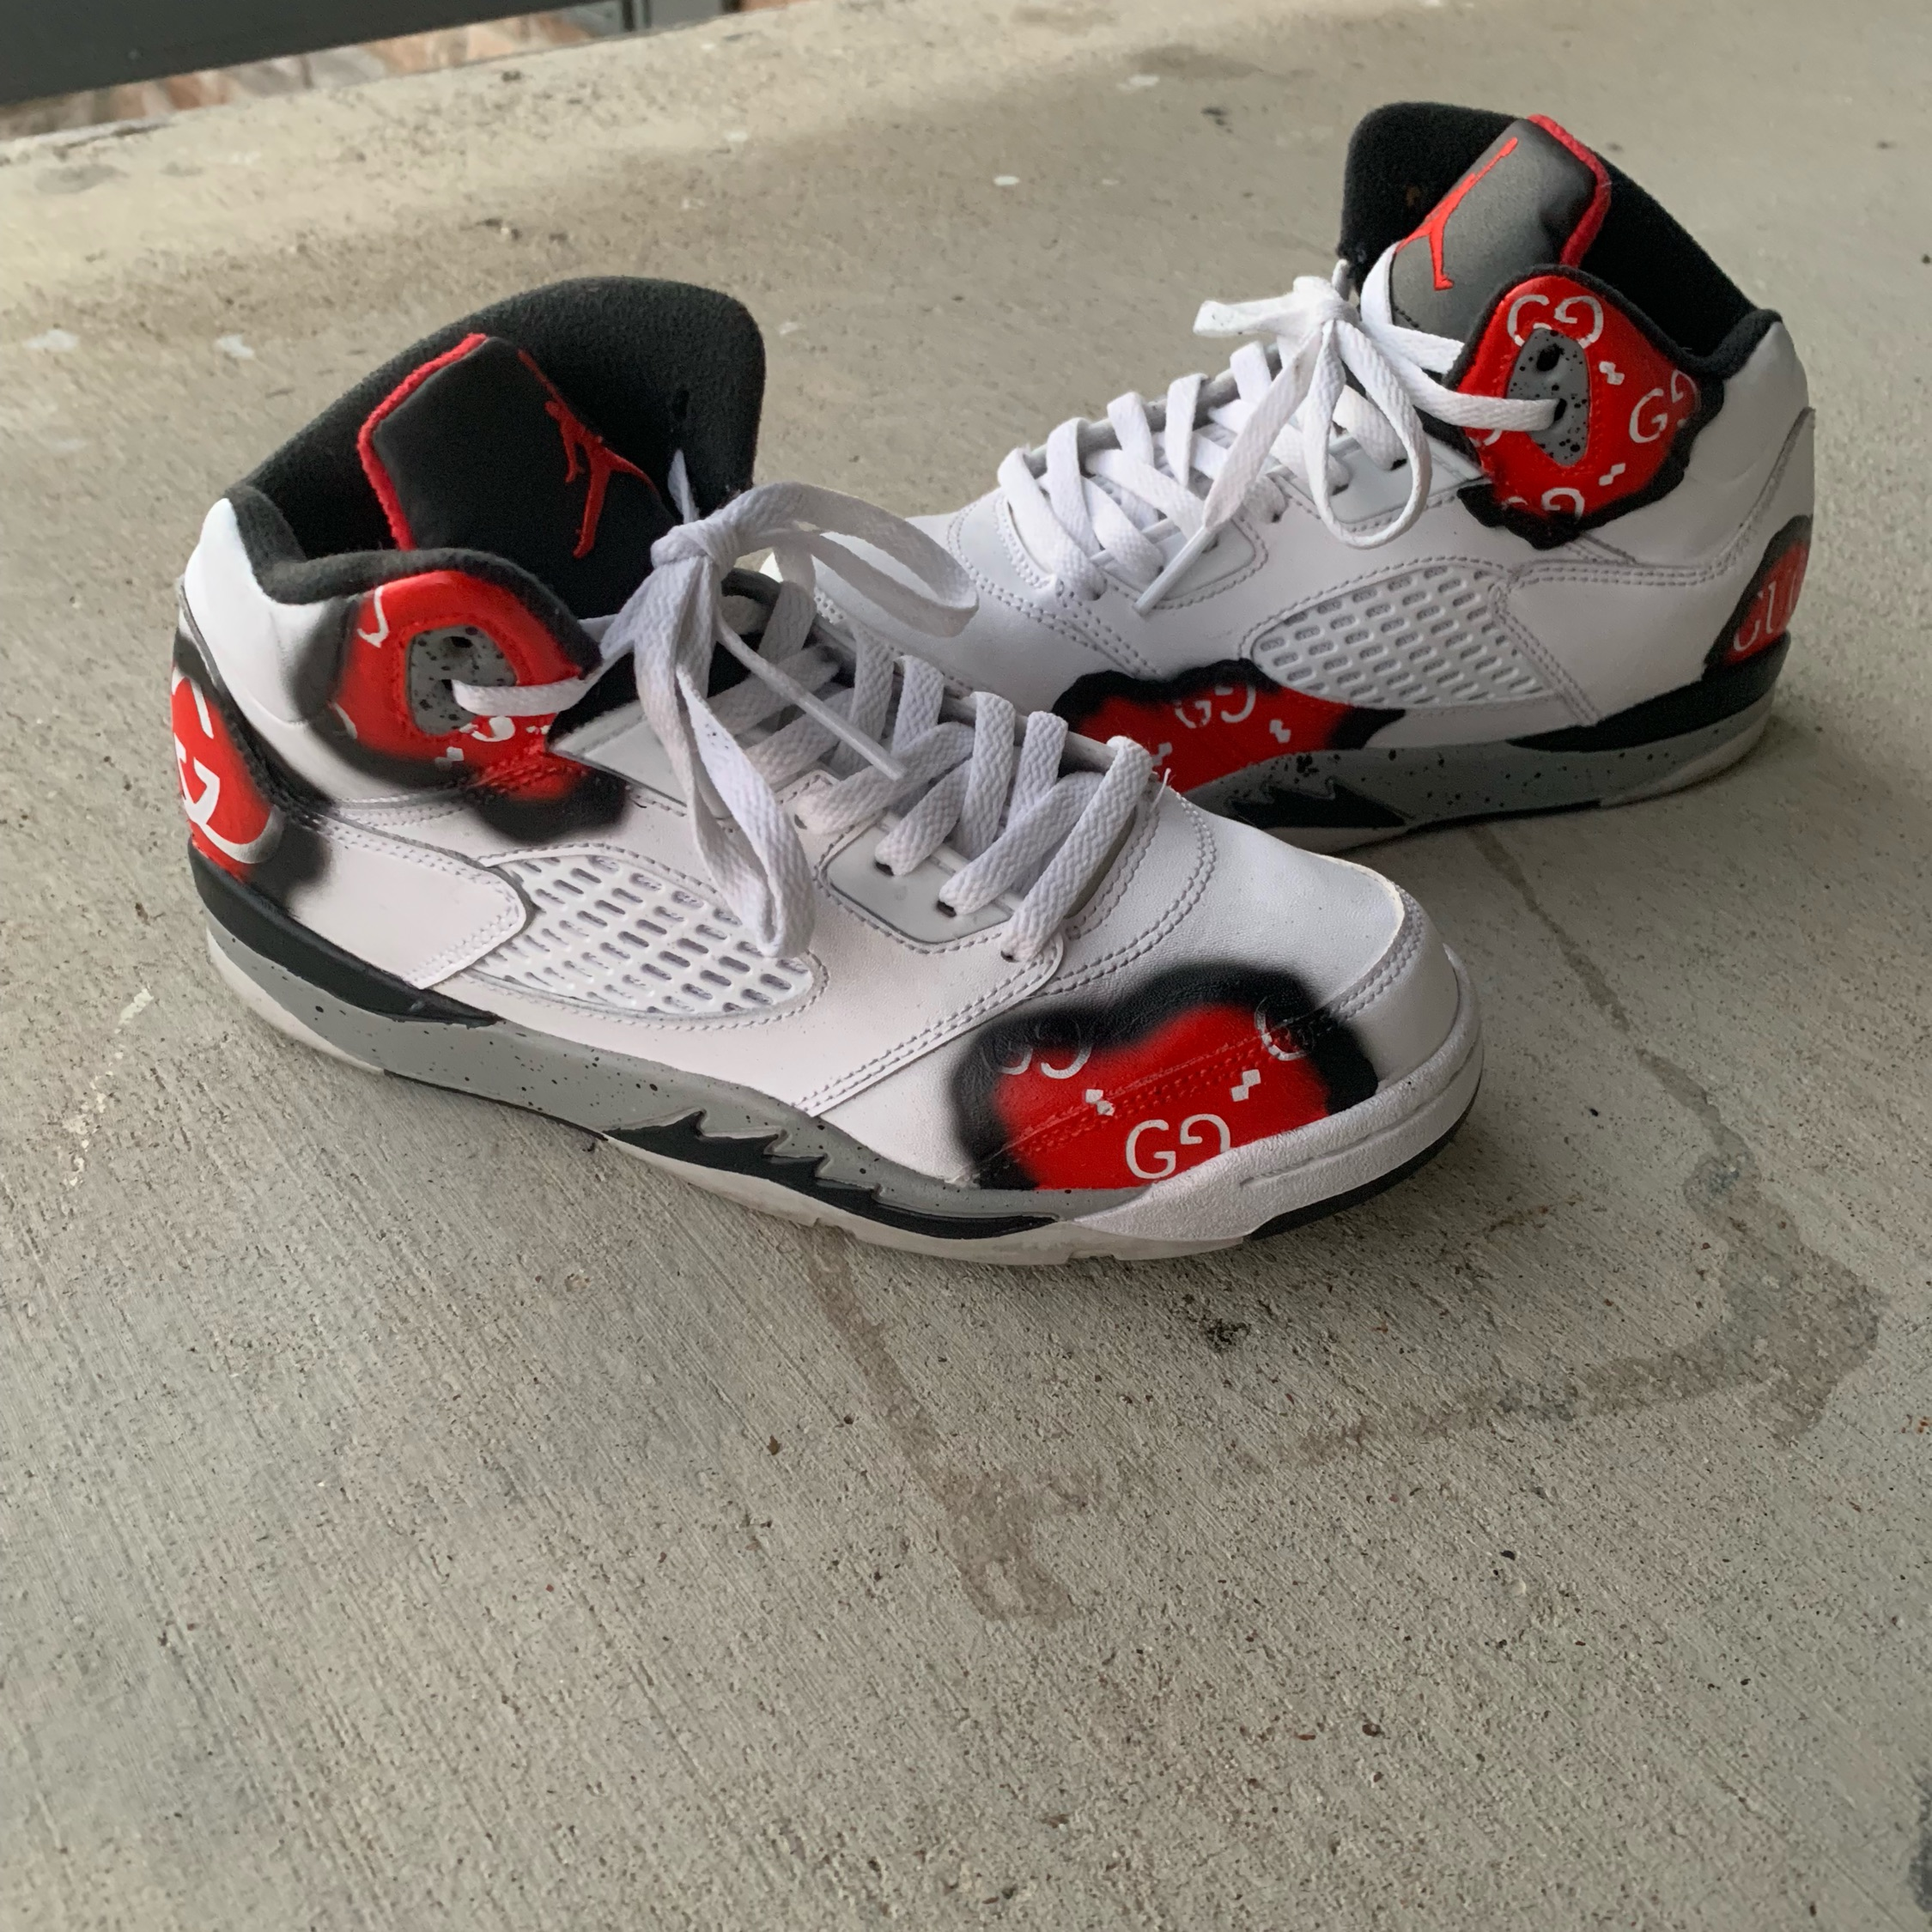 """new style c1d03 22d2a Custom Retro 5 """"Gucci Burn Theme"""" Any Size/Color"""